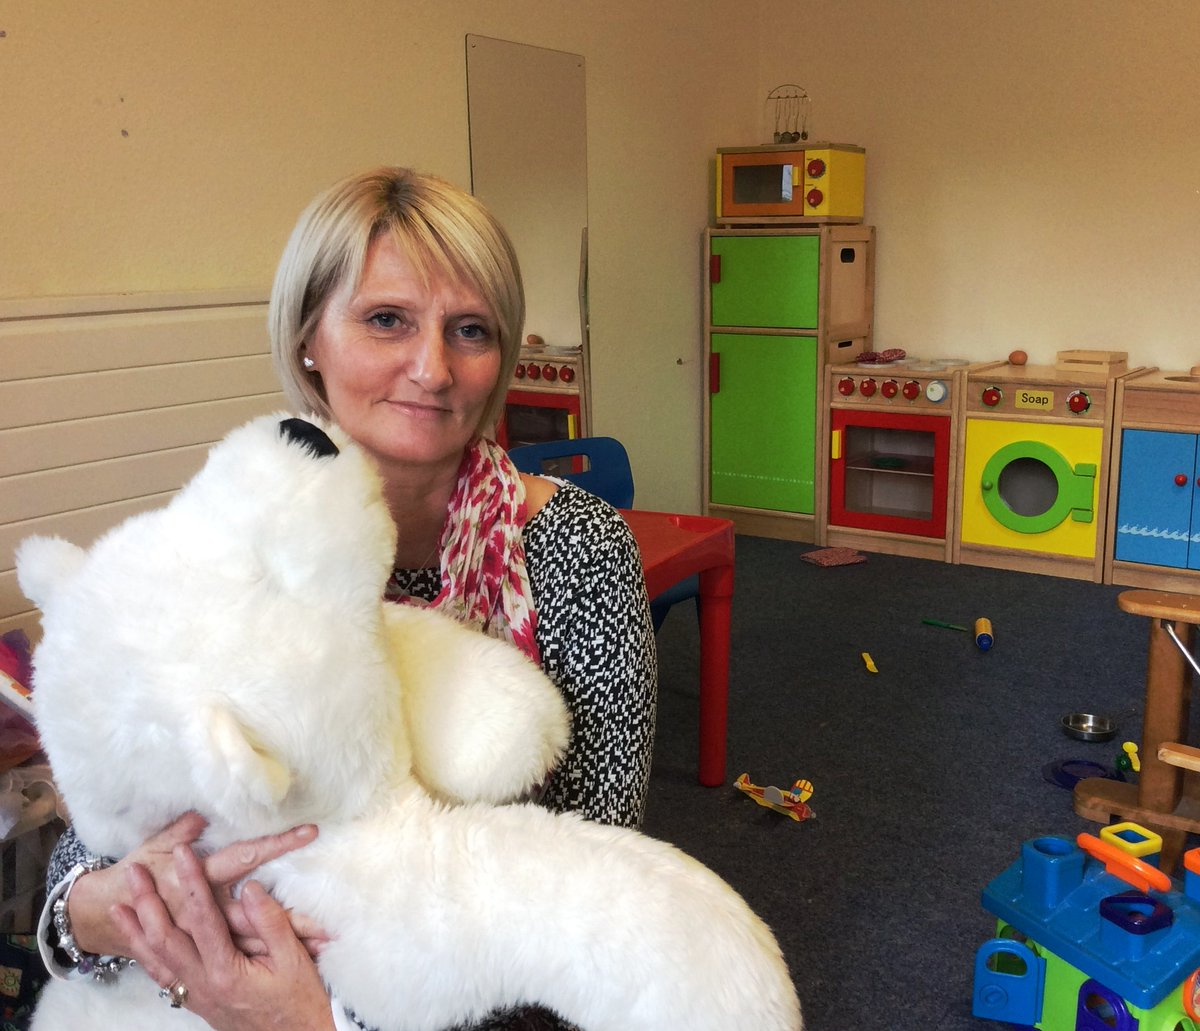 """""""Fostering is even more special at Christmas. Christmas can be an emotional time of year but having lots of little faces around you - that's special,"""" said Tracey. Please spare a thought for children in care. Read more of Tracey 's inspiring experience: https://t.co/XcUg6SVB1I."""